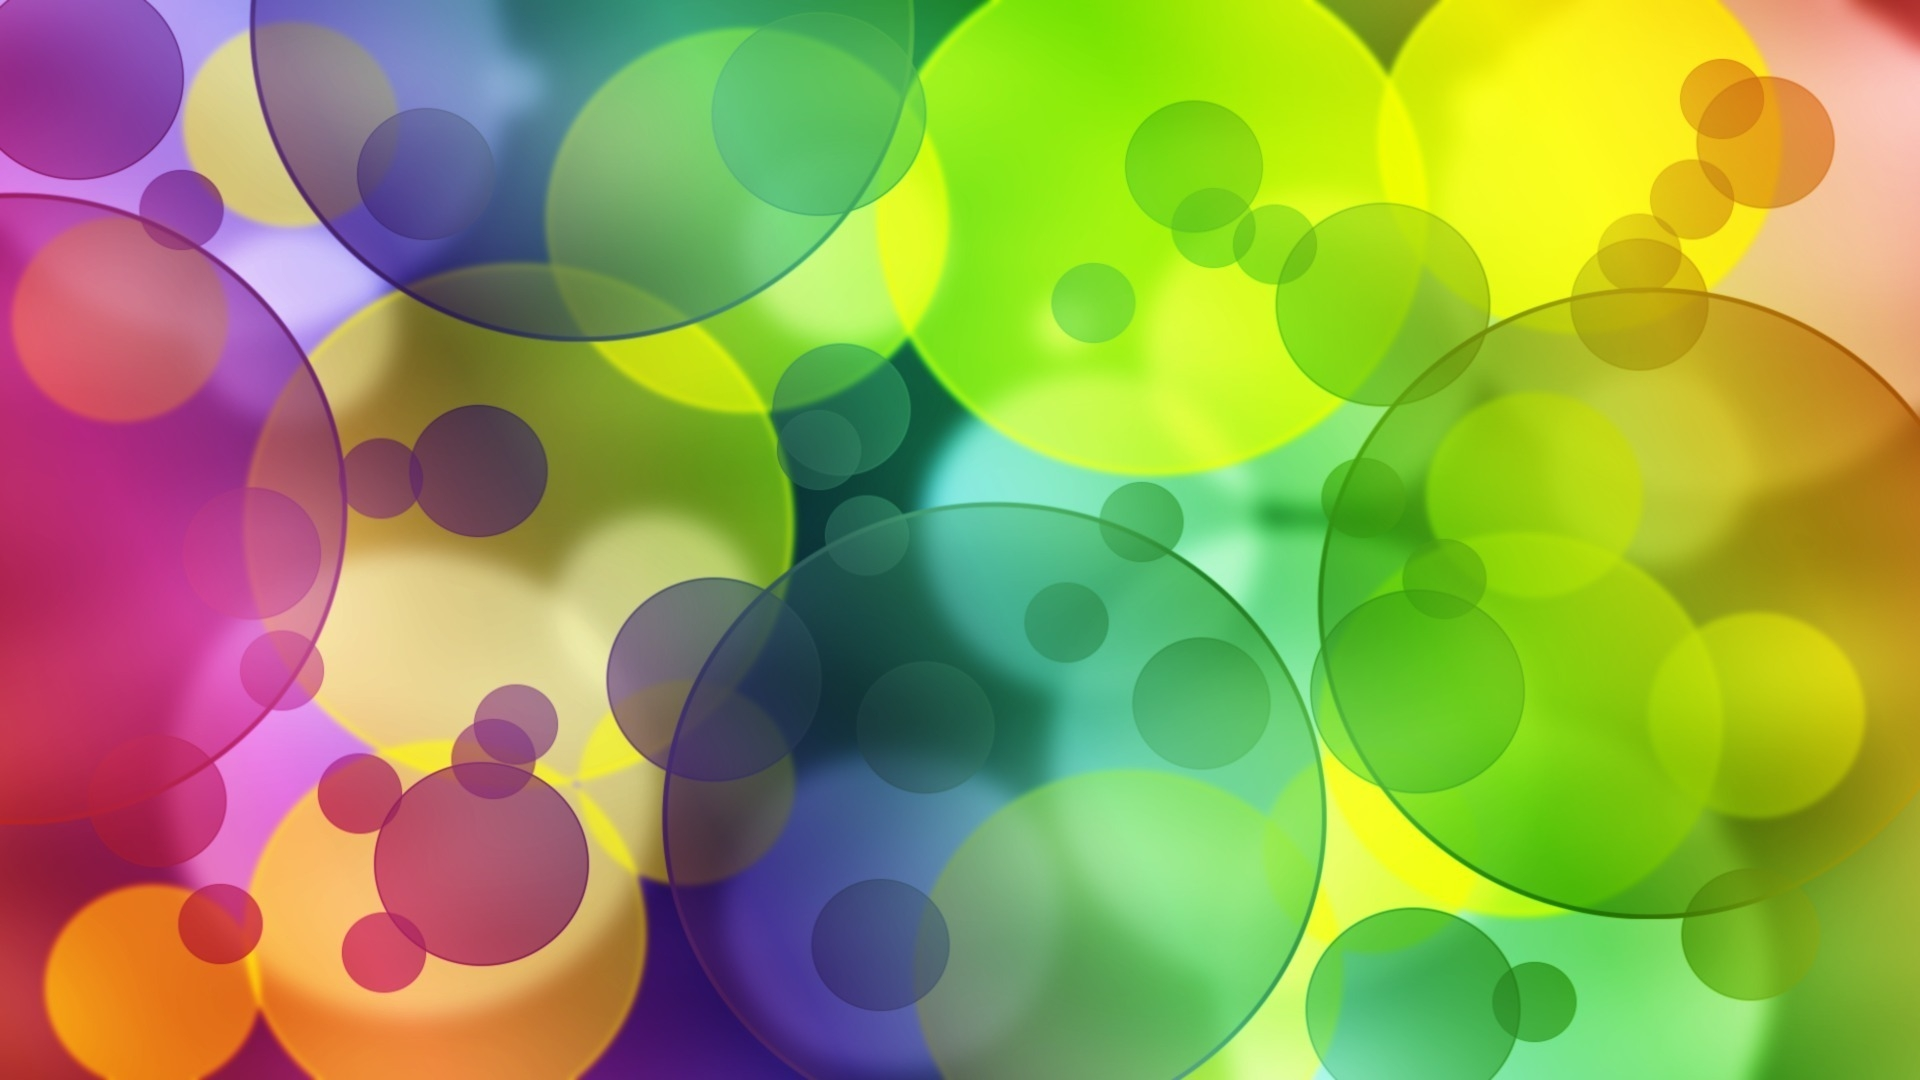 colorful bubbles wallpaper 46067 1920x1080 px ~ hdwallsource